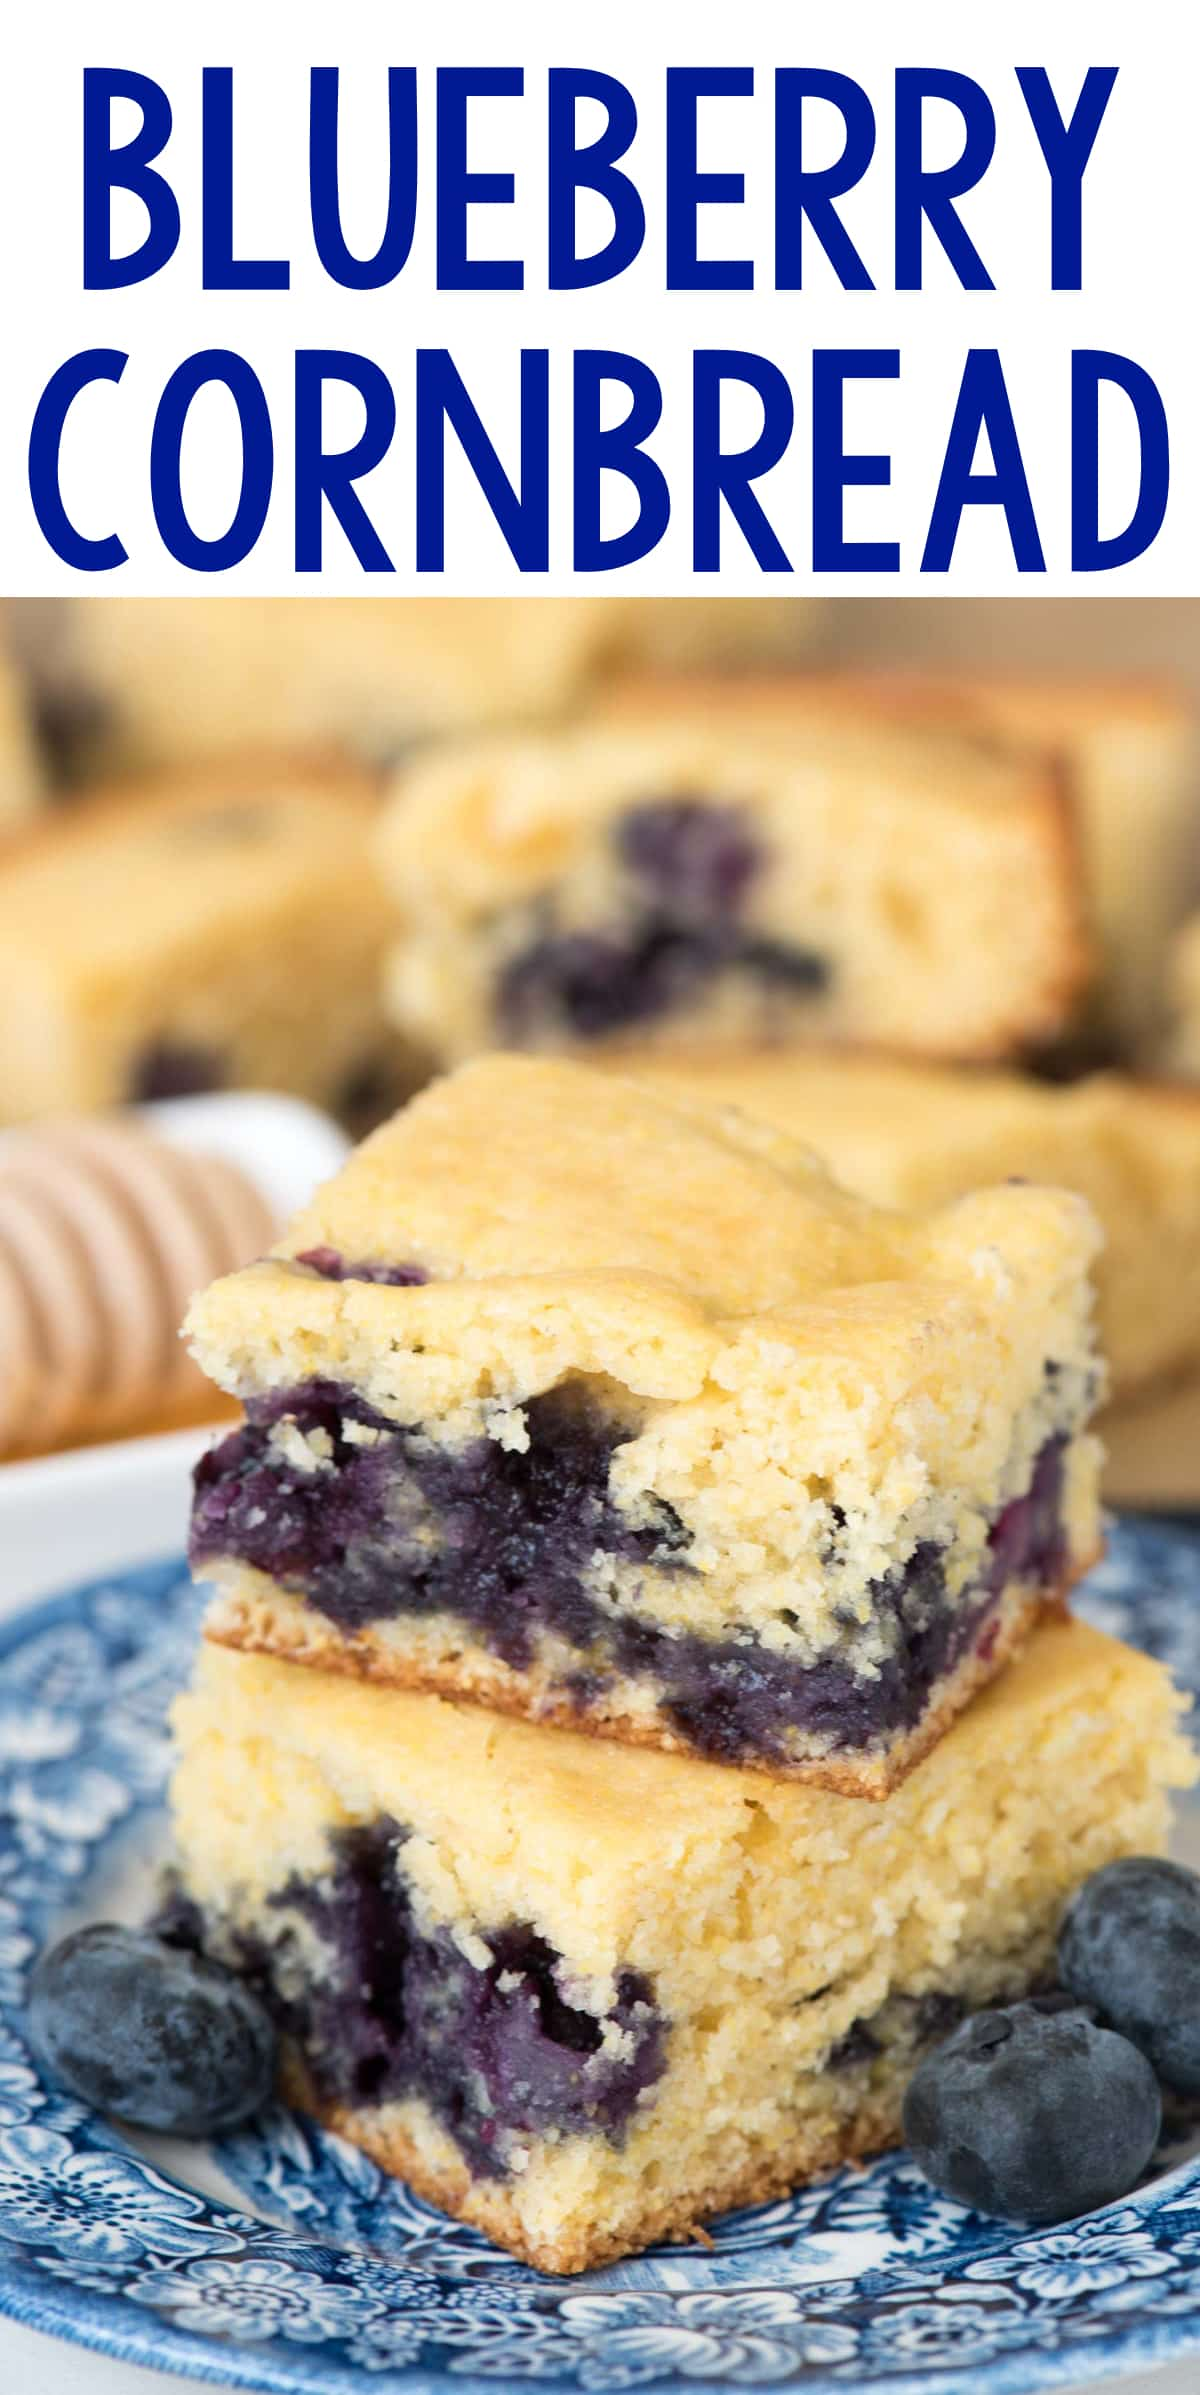 EASY Blueberry Cornbread - this cornbread recipe starts with a doctored mix. The blueberries and some added sugar make this the PERFECT breakfast or dessert recipe.